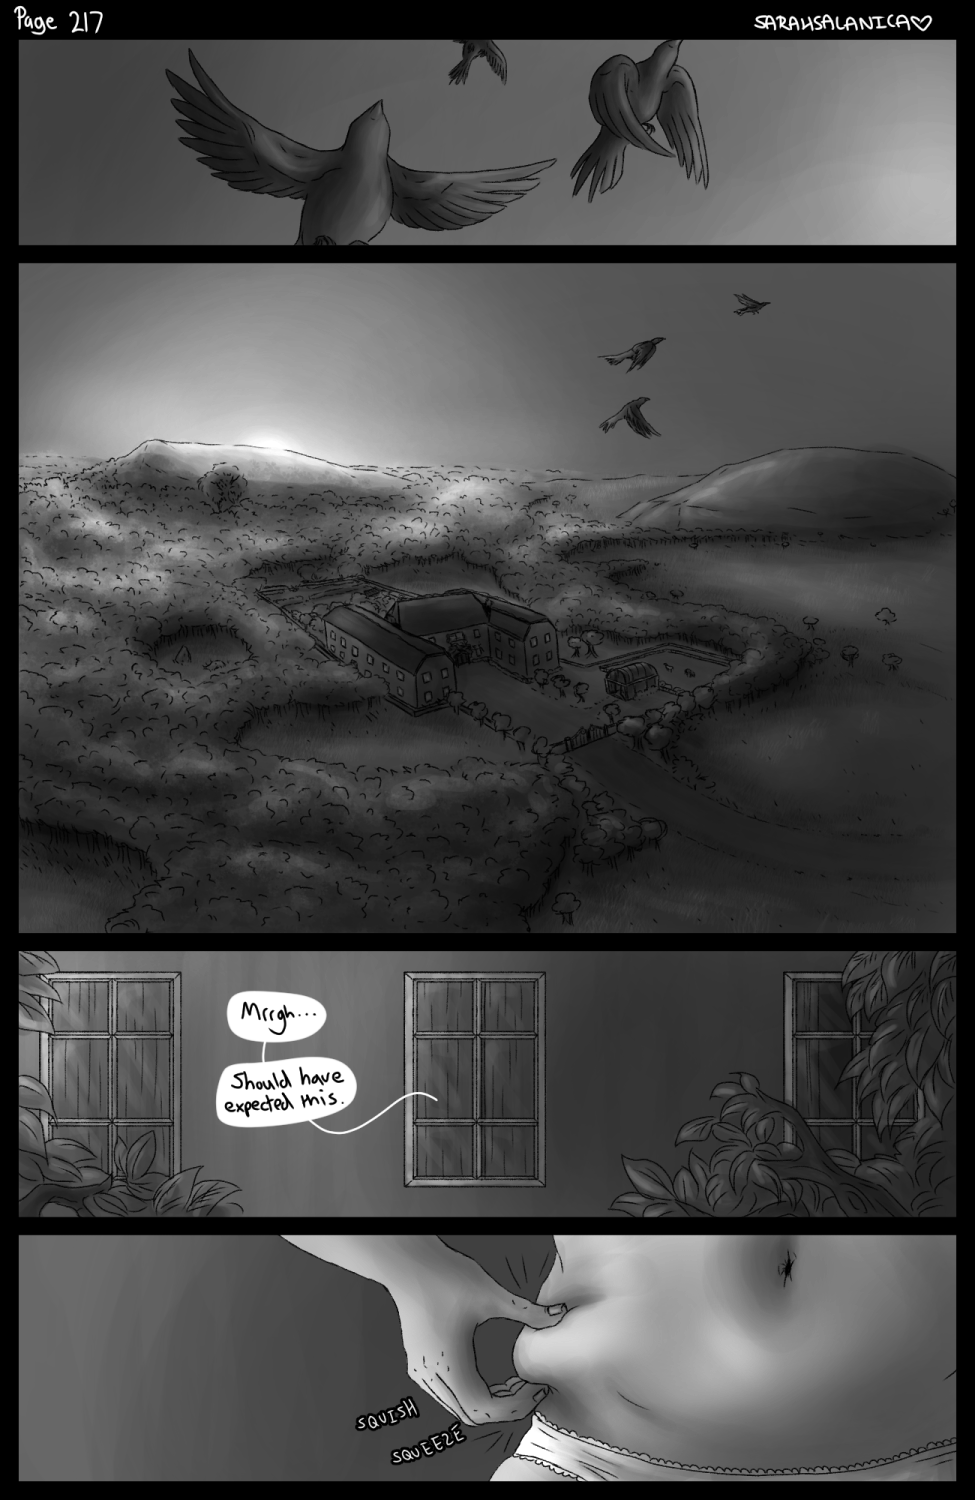 Can('t) Buy Love- Chapter 5 Page 217